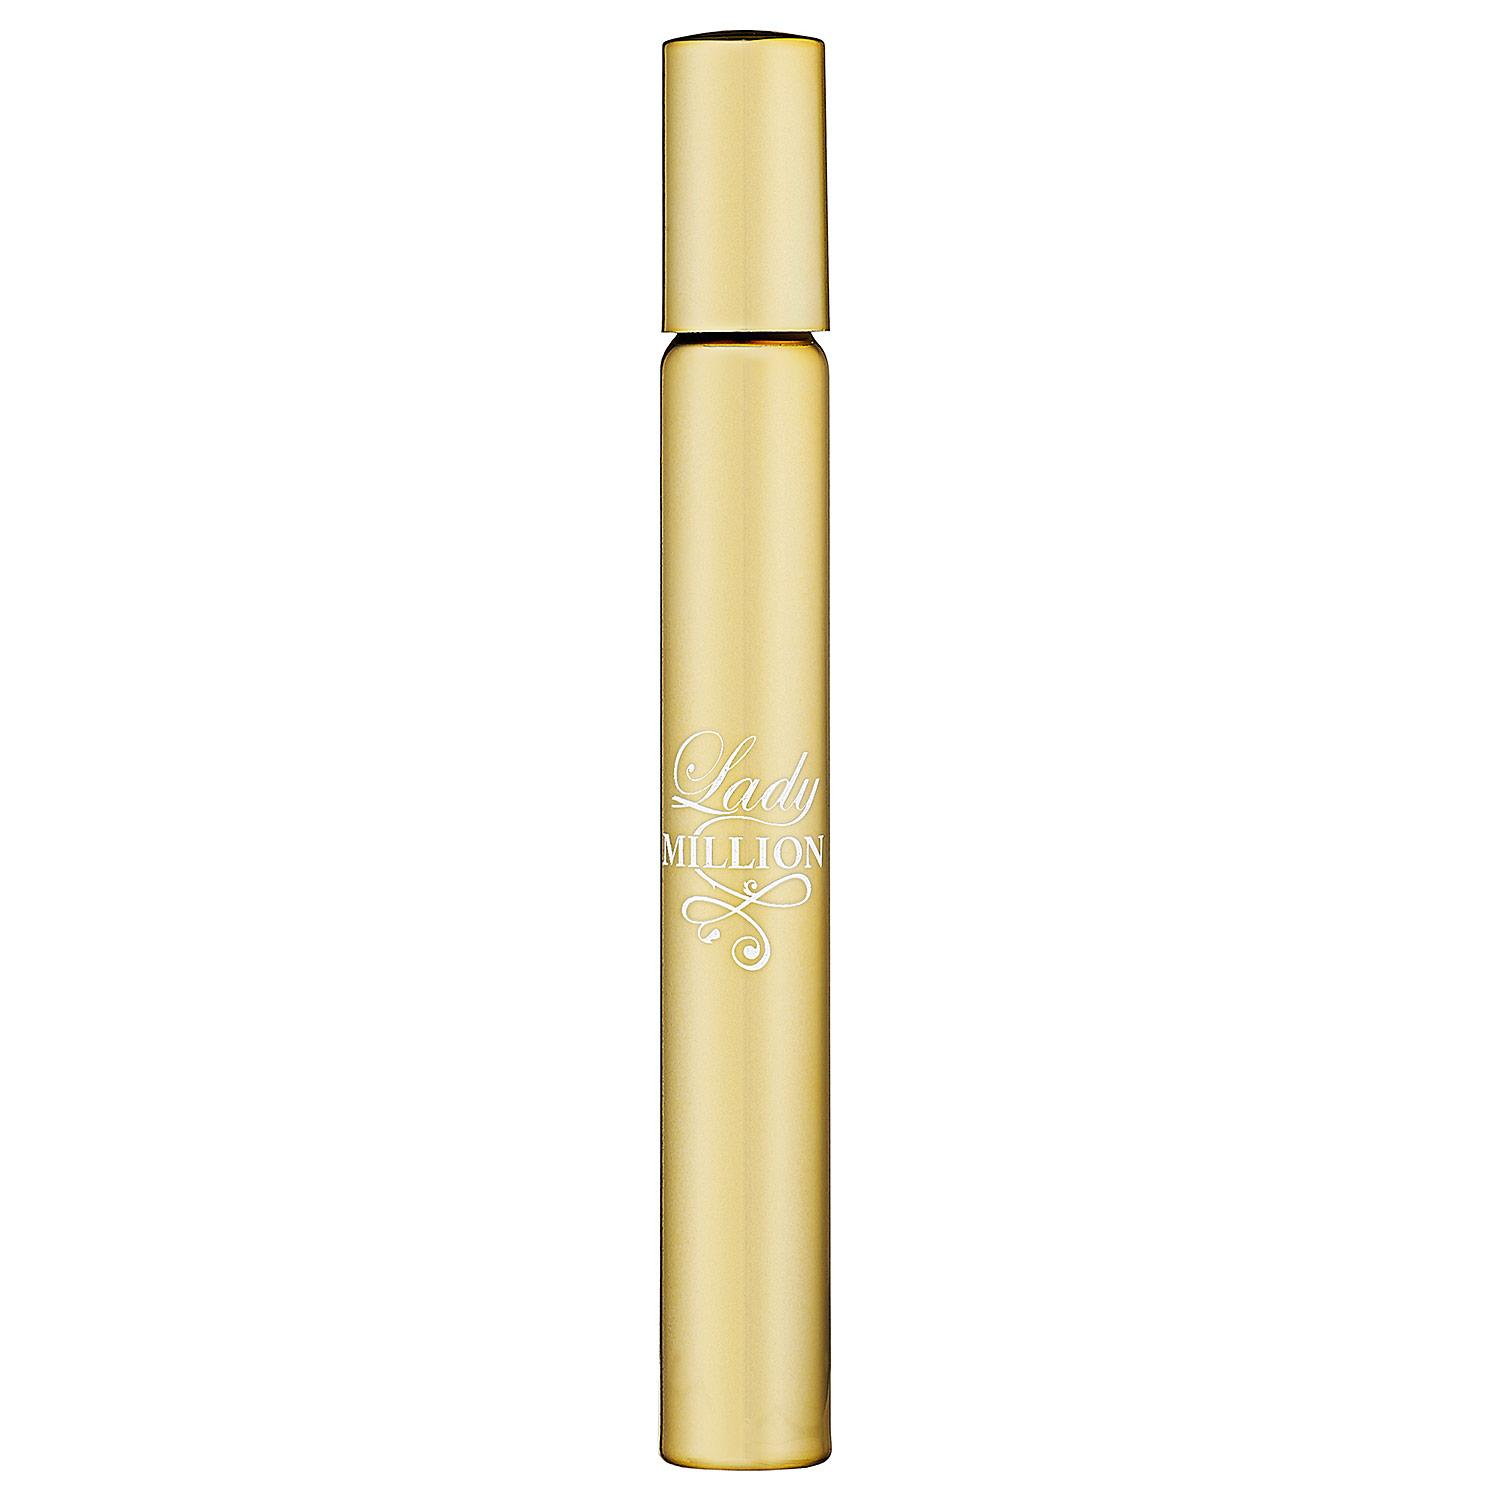 Lady Million Rollerball